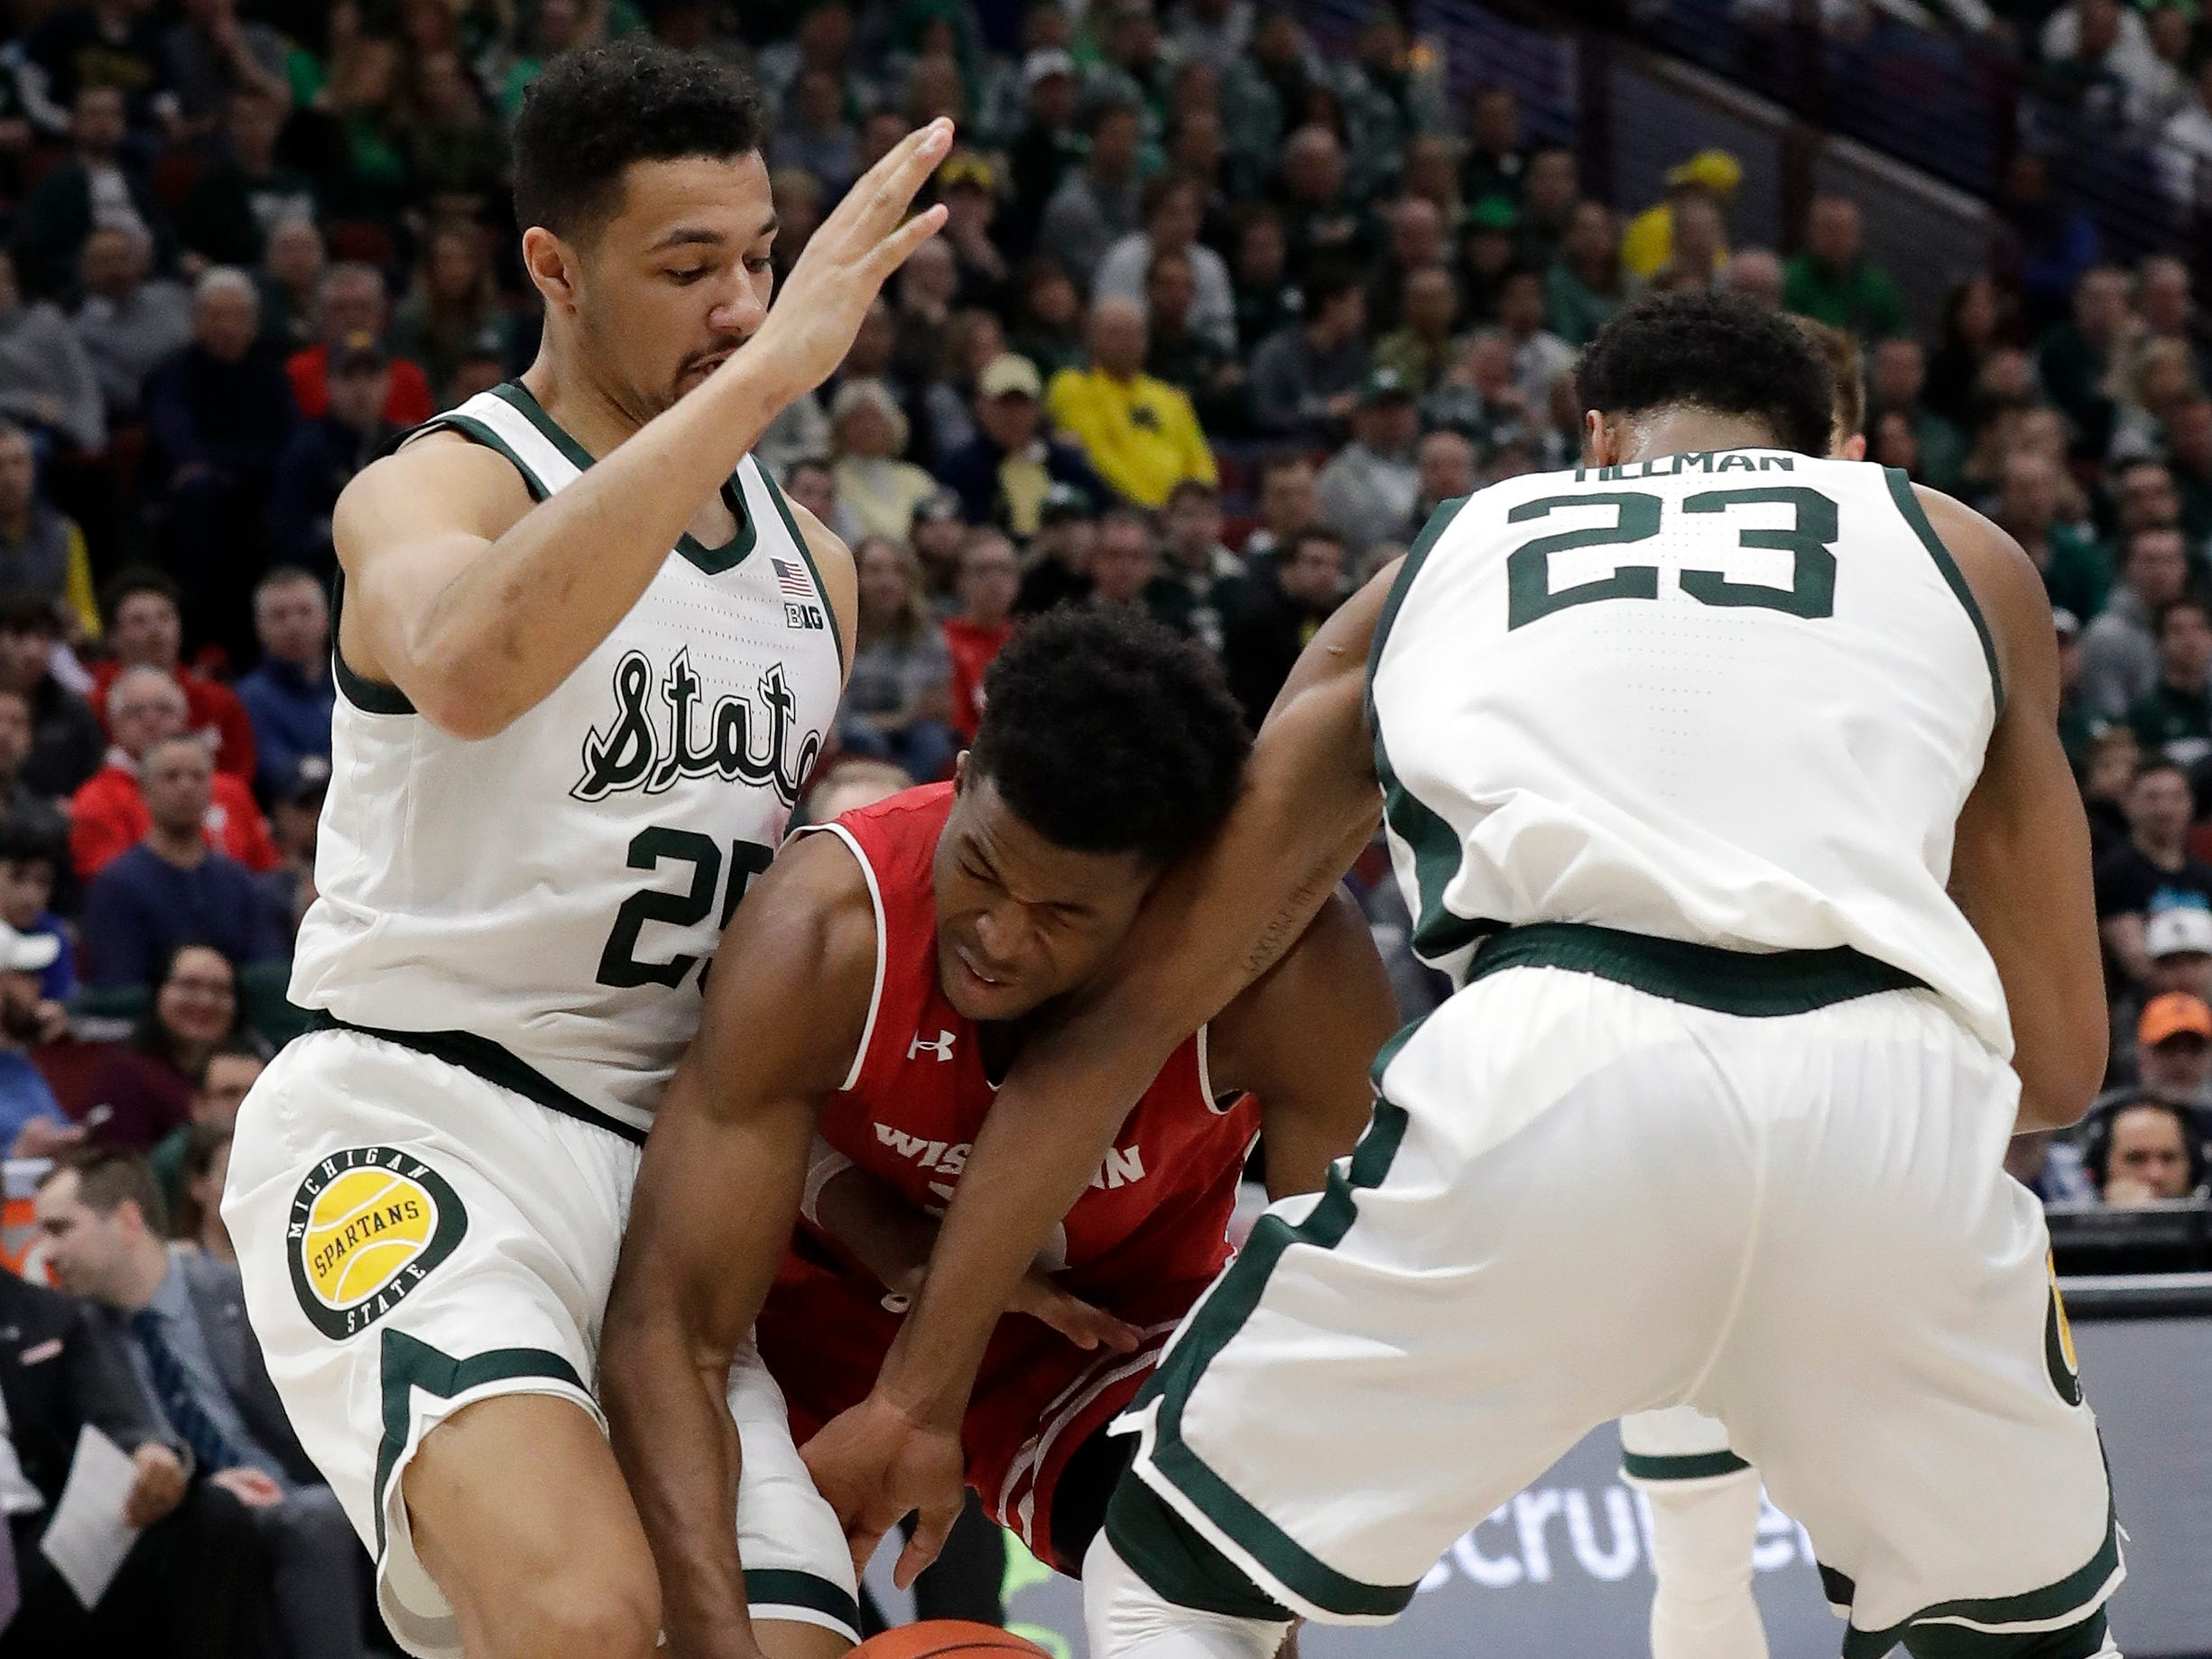 Wisconsin's Khalil Iverson goes after a loose ball against Michigan State's Kenny Goins (25) and Xavier Tillman during the first half.